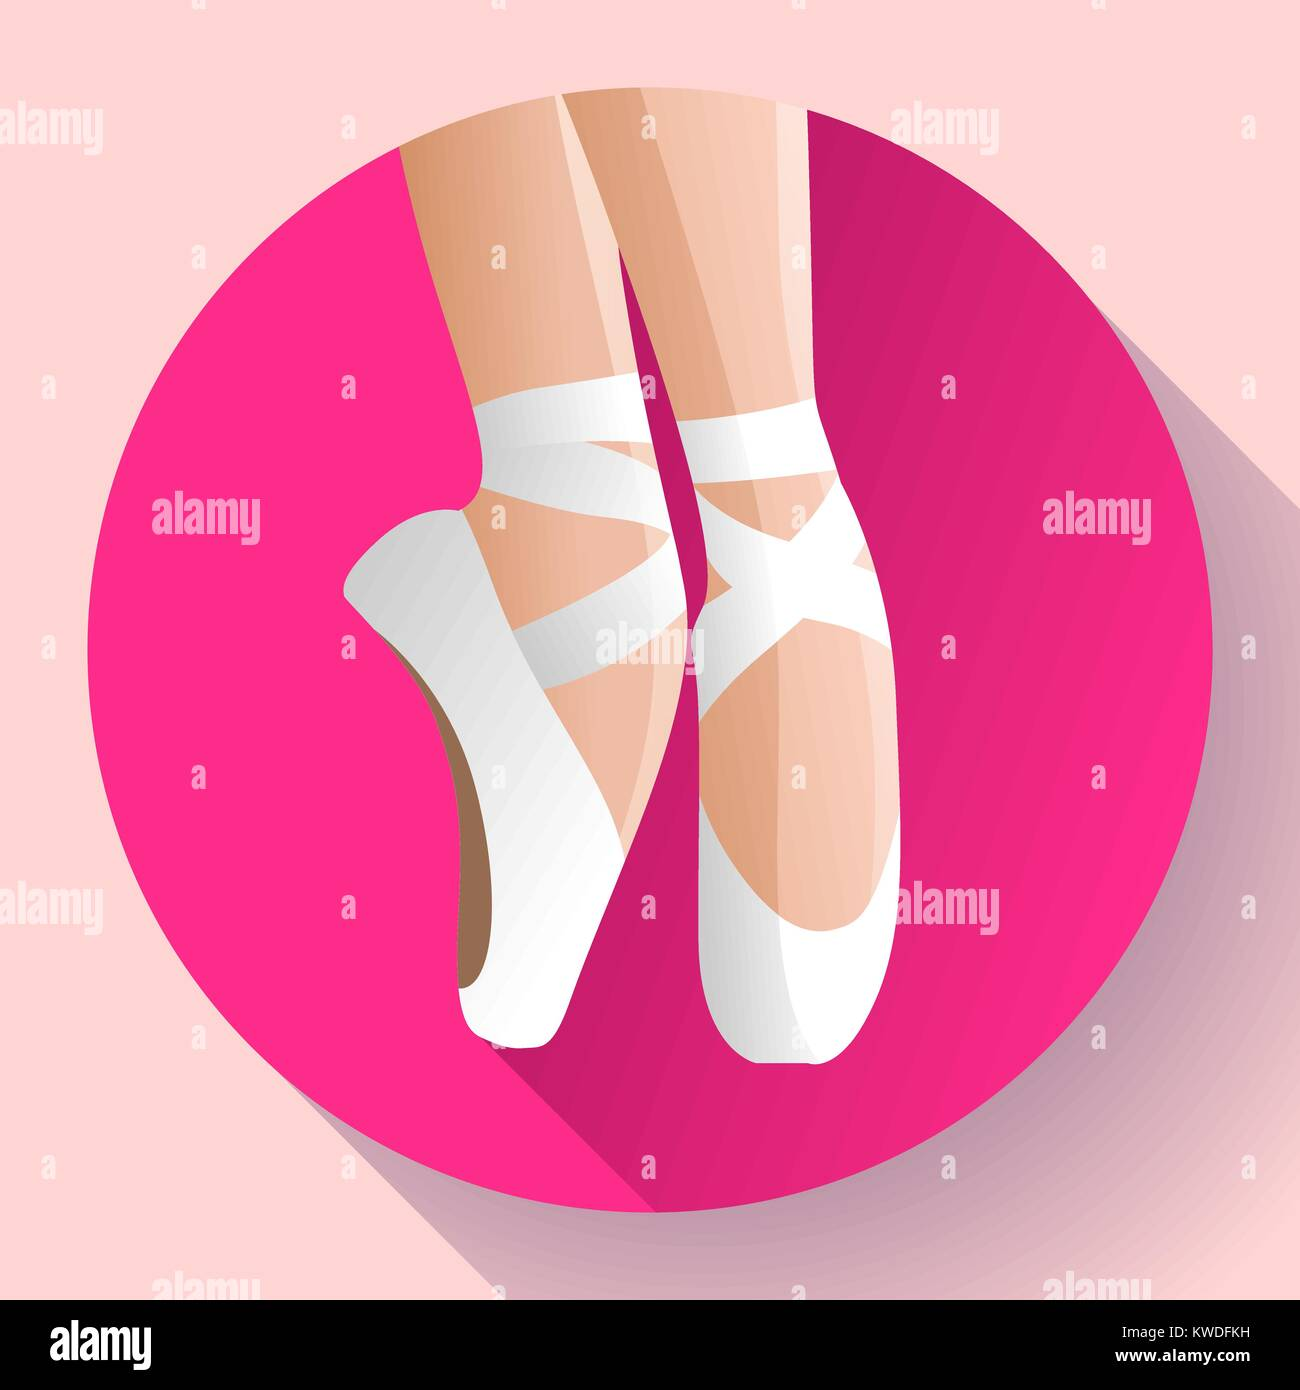 66a9c5fe25901 White ballet pointe shoes flat Vector illustration of gym ballet shoes  standing on tiptoes